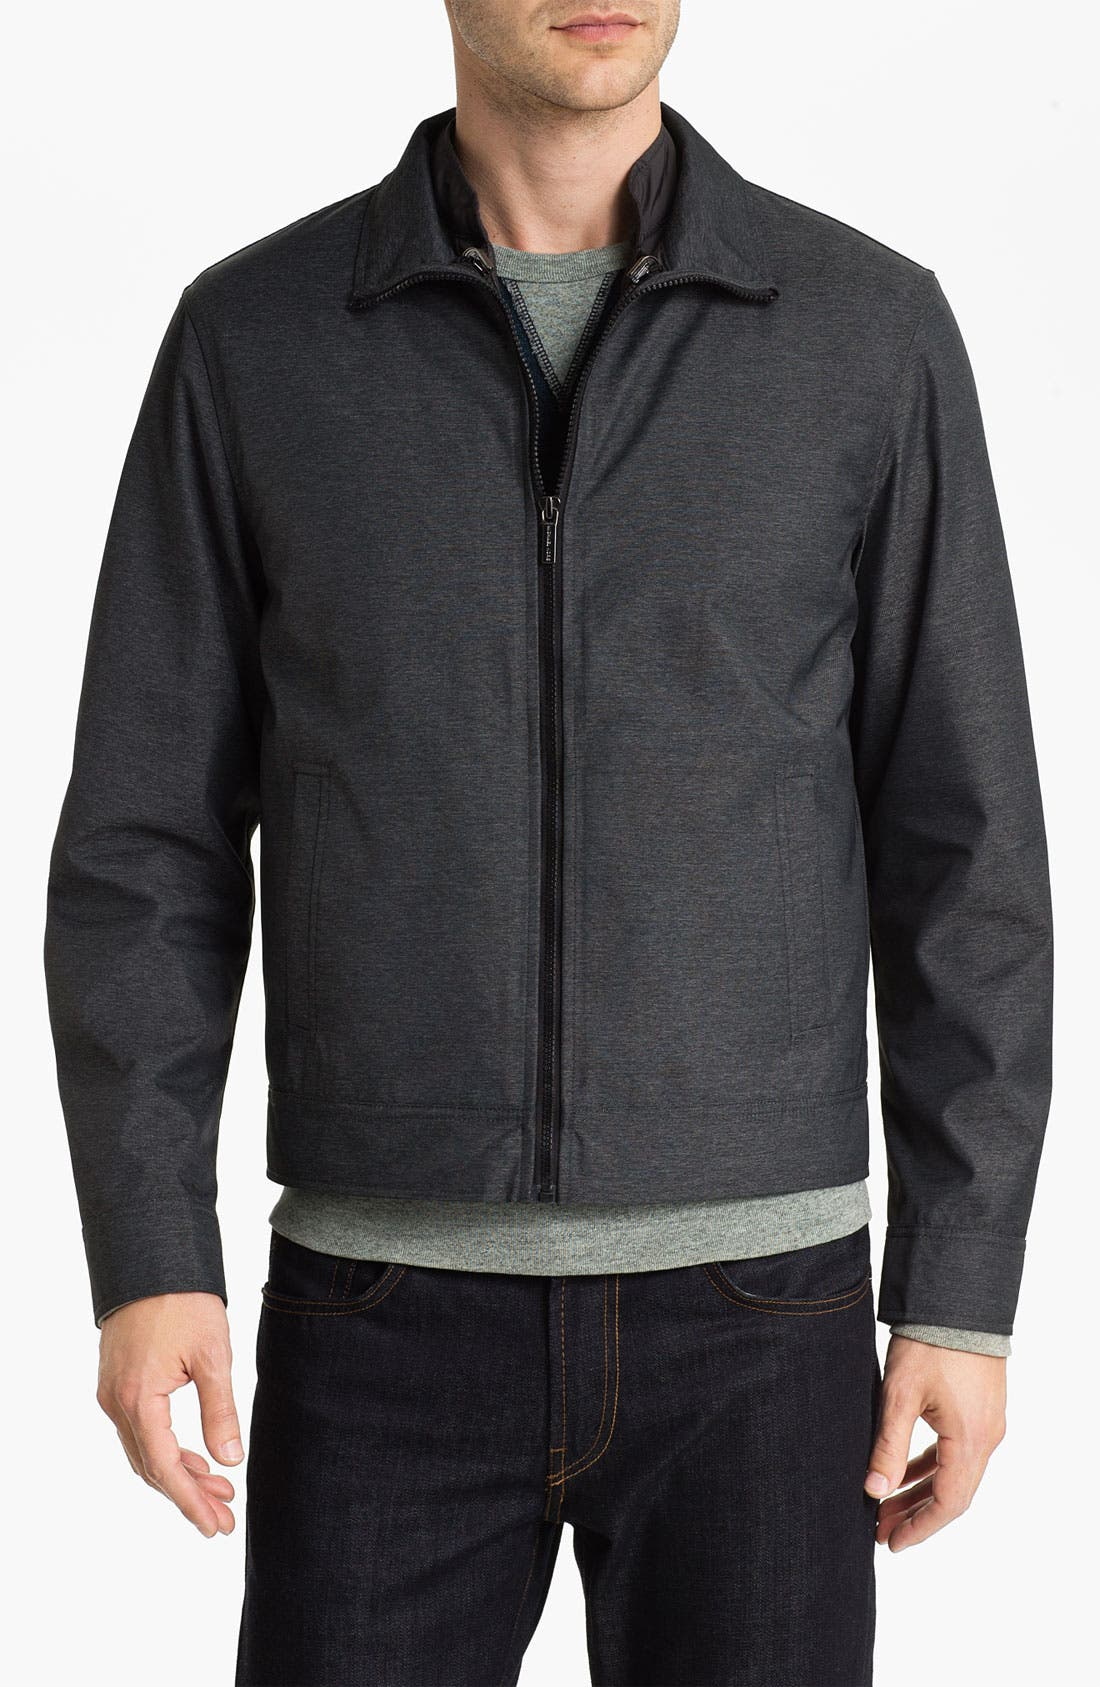 Alternate Image 1 Selected - Michael Kors 3-in-1 Mélange Twill Jacket (Online Exclusive)